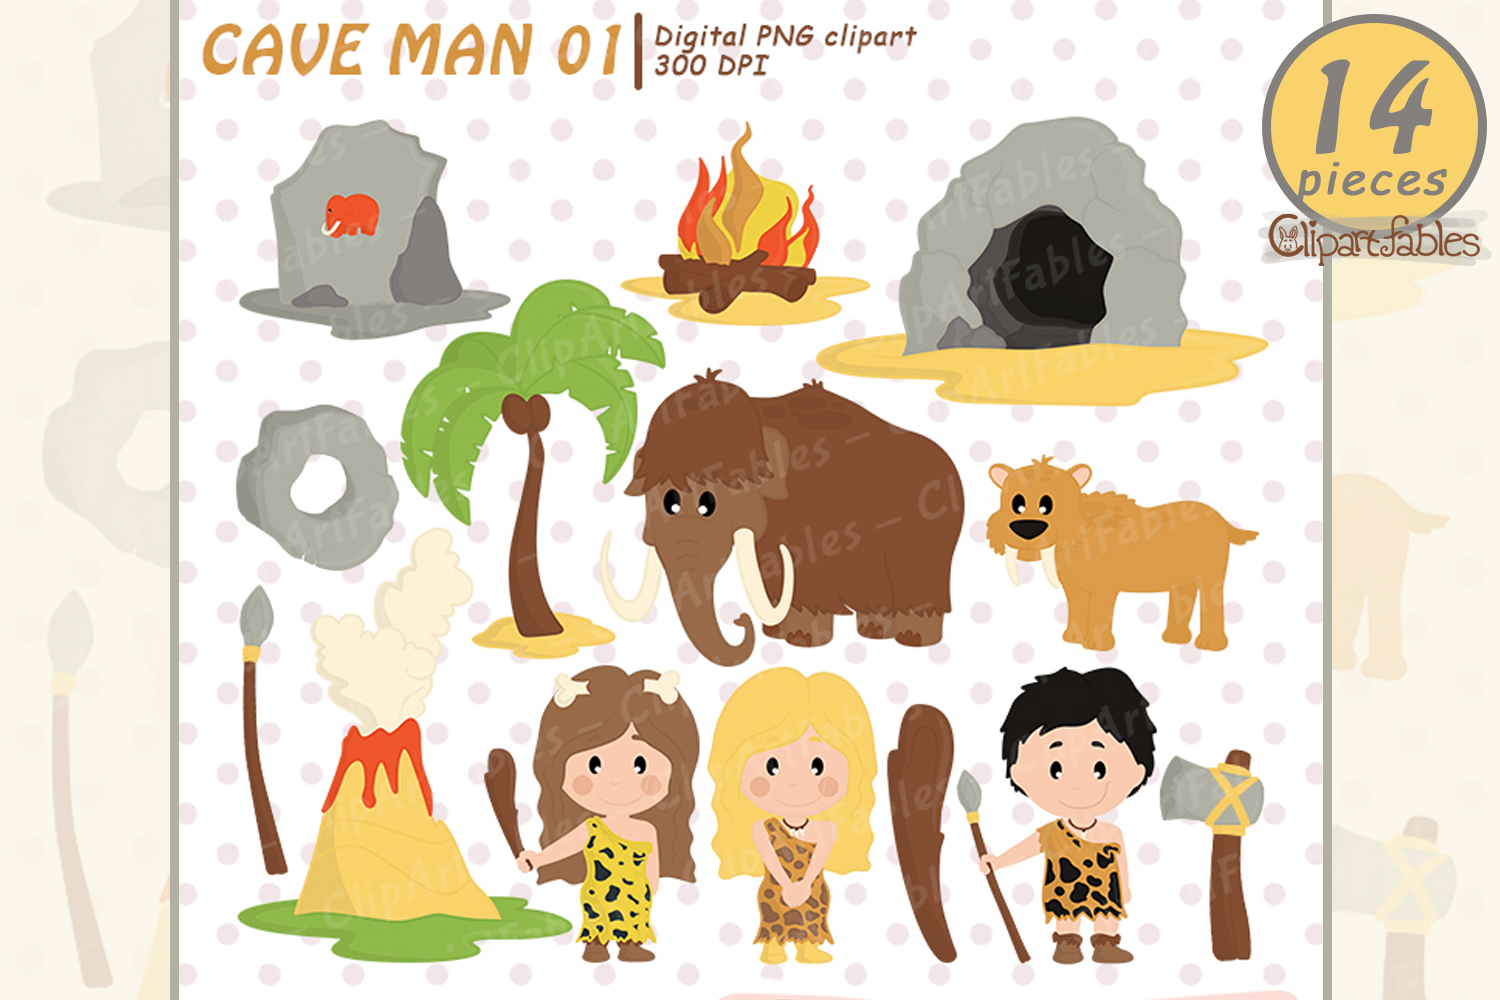 Ice age, Caveman clipart, Stone age - instant download example image 1